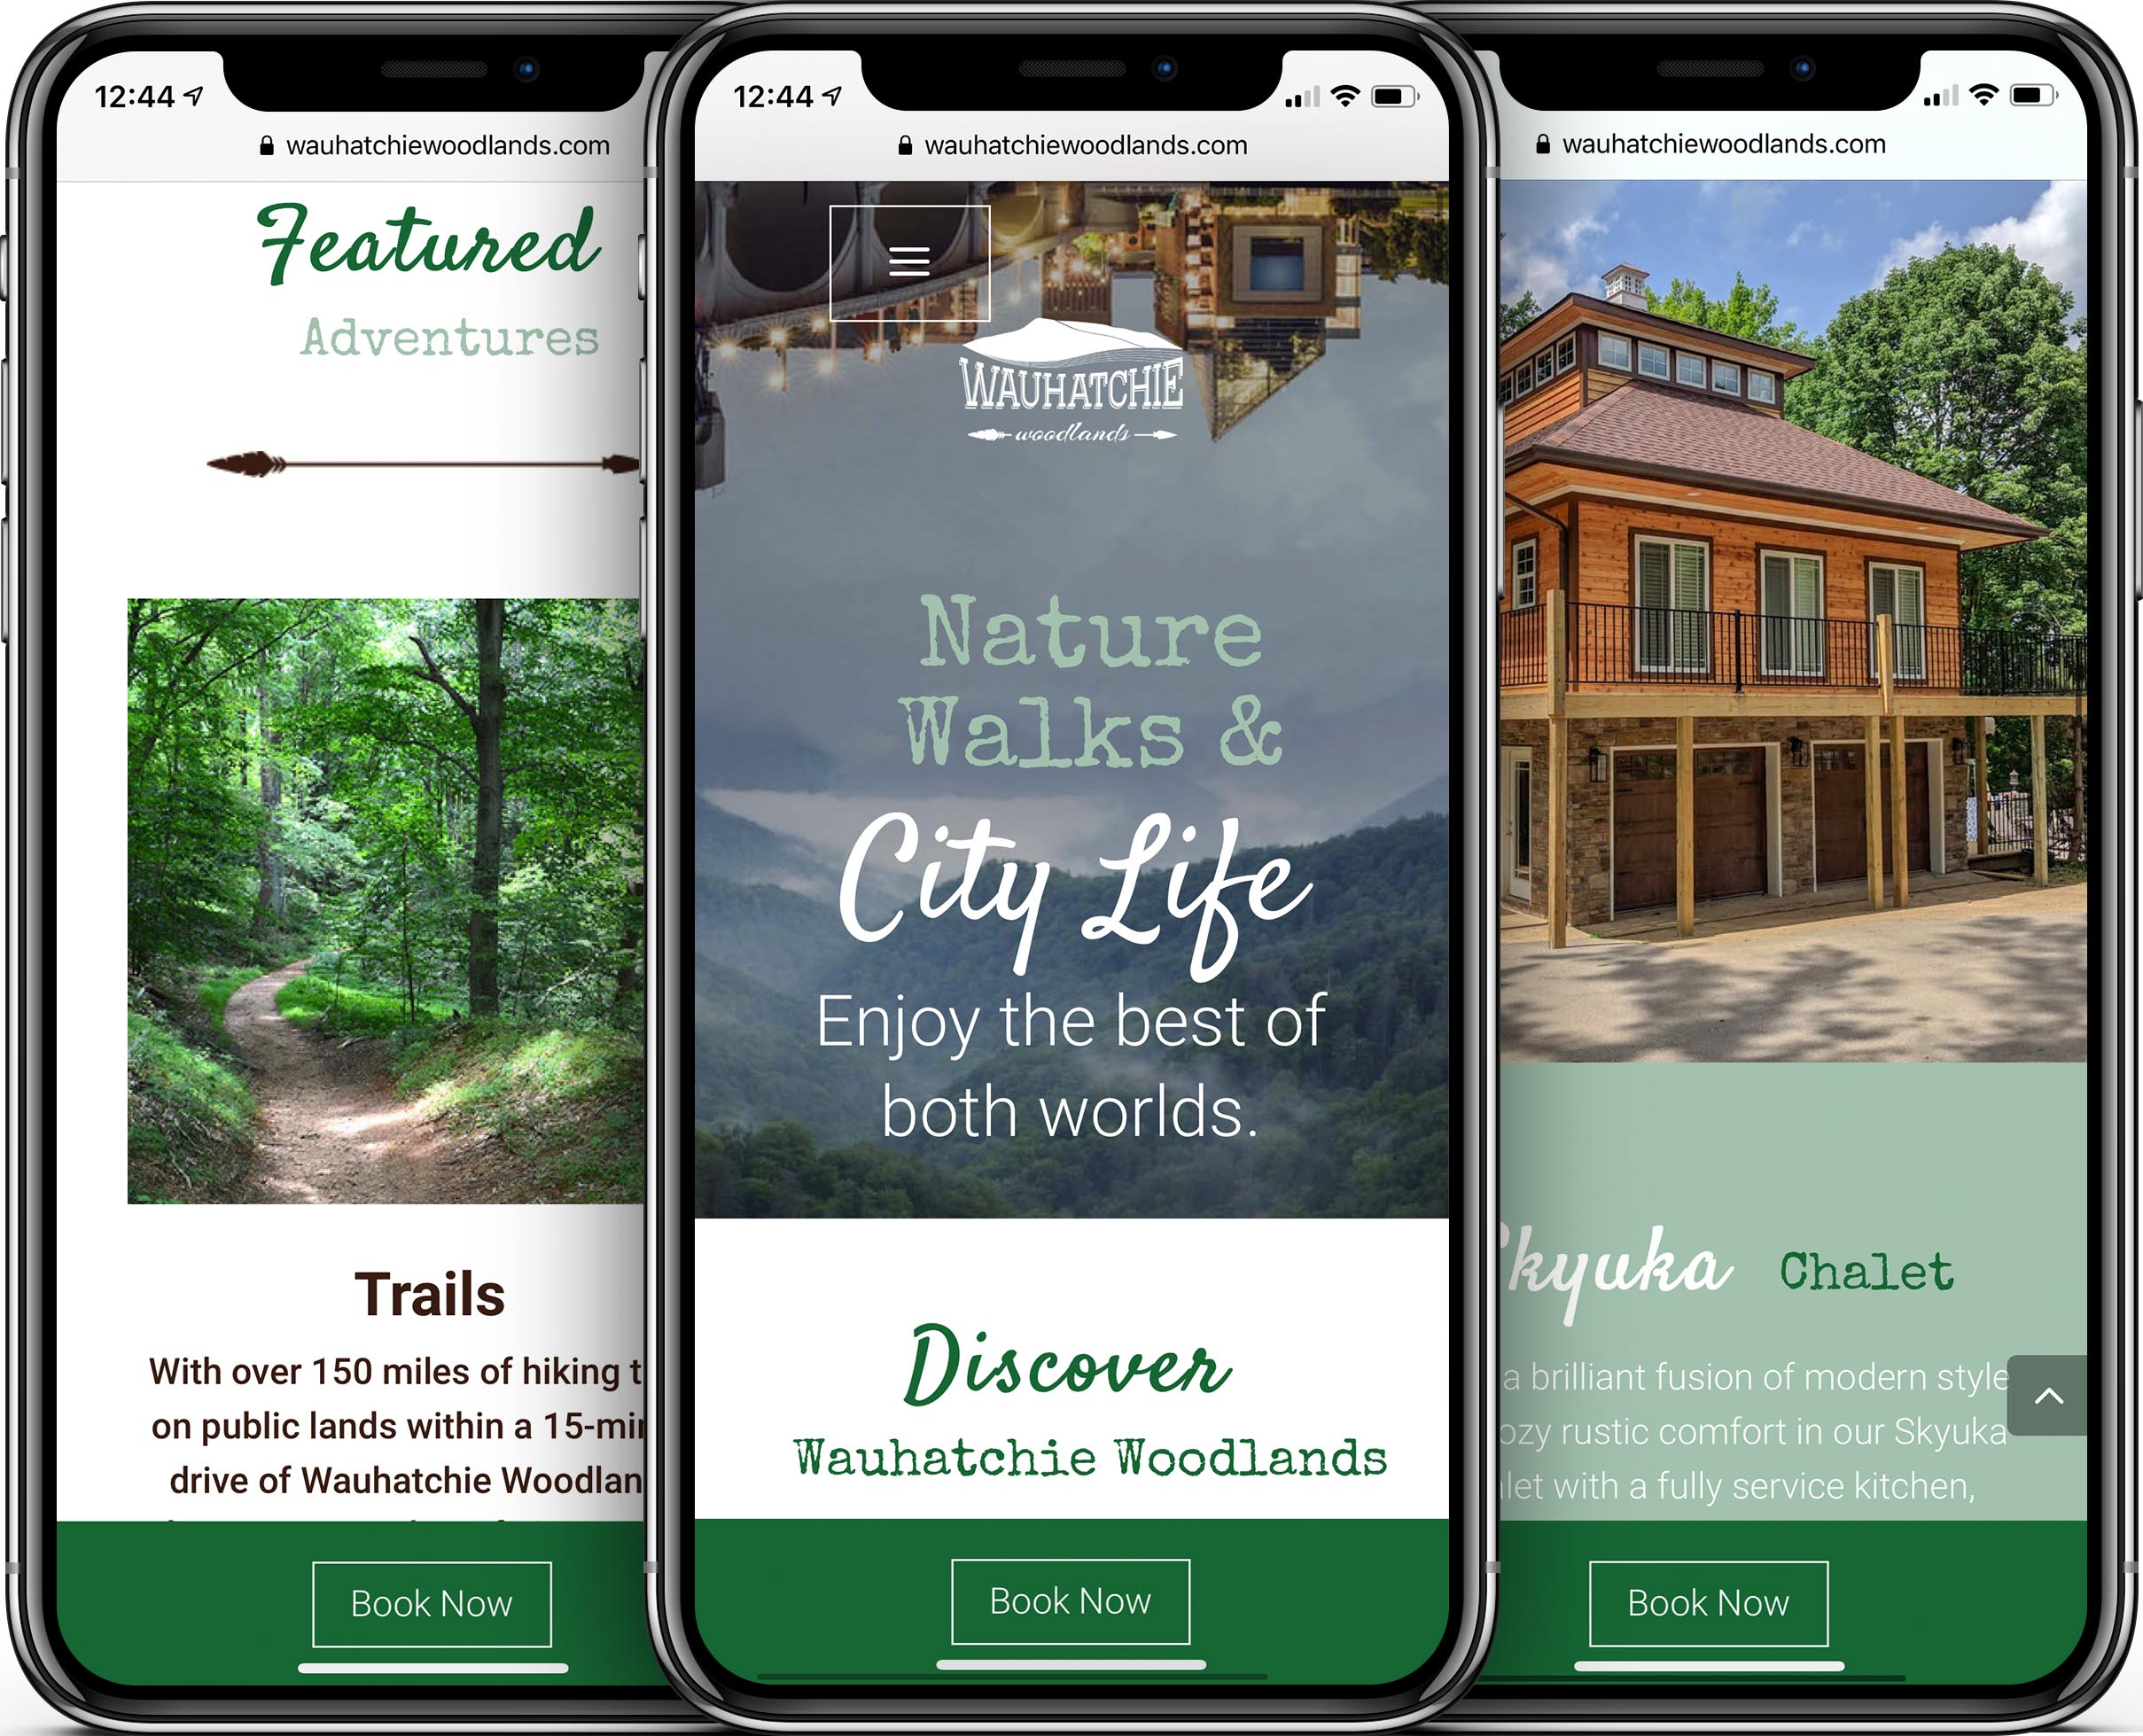 Wauhatchie Woodlands Mobile-Friendly Web Design